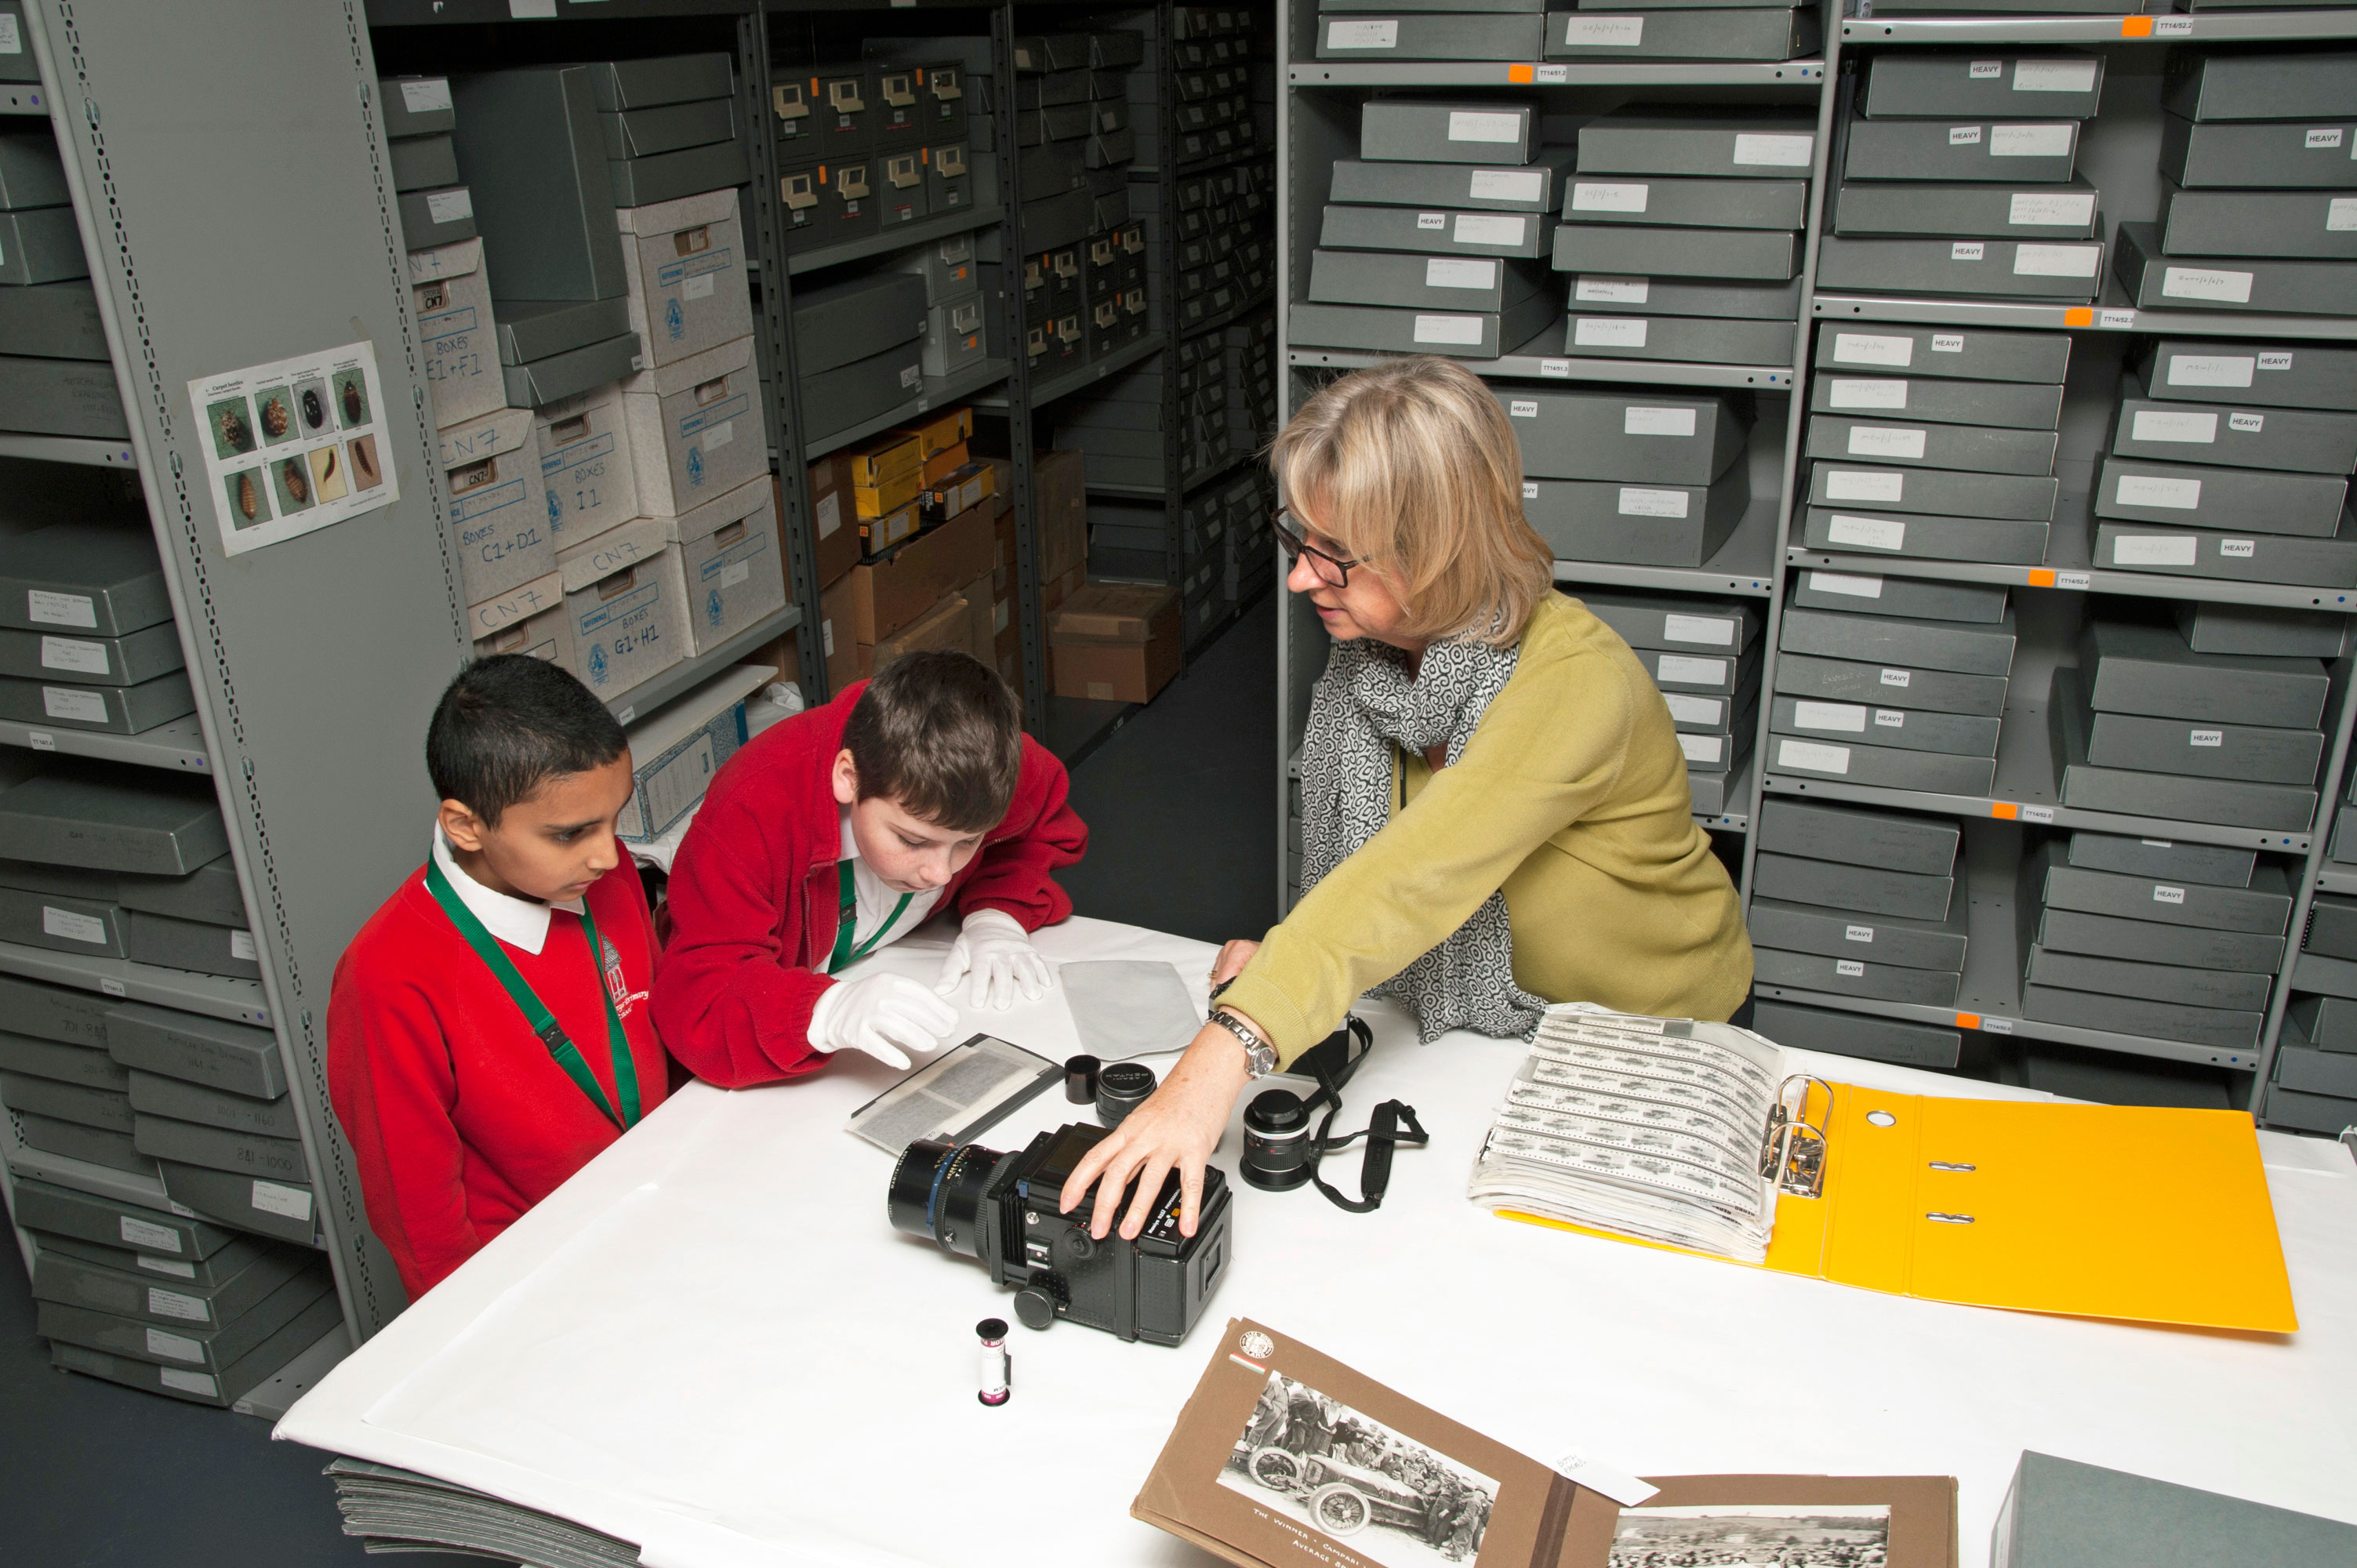 A museum curator showing two school children an old camera and some historic photgraphs